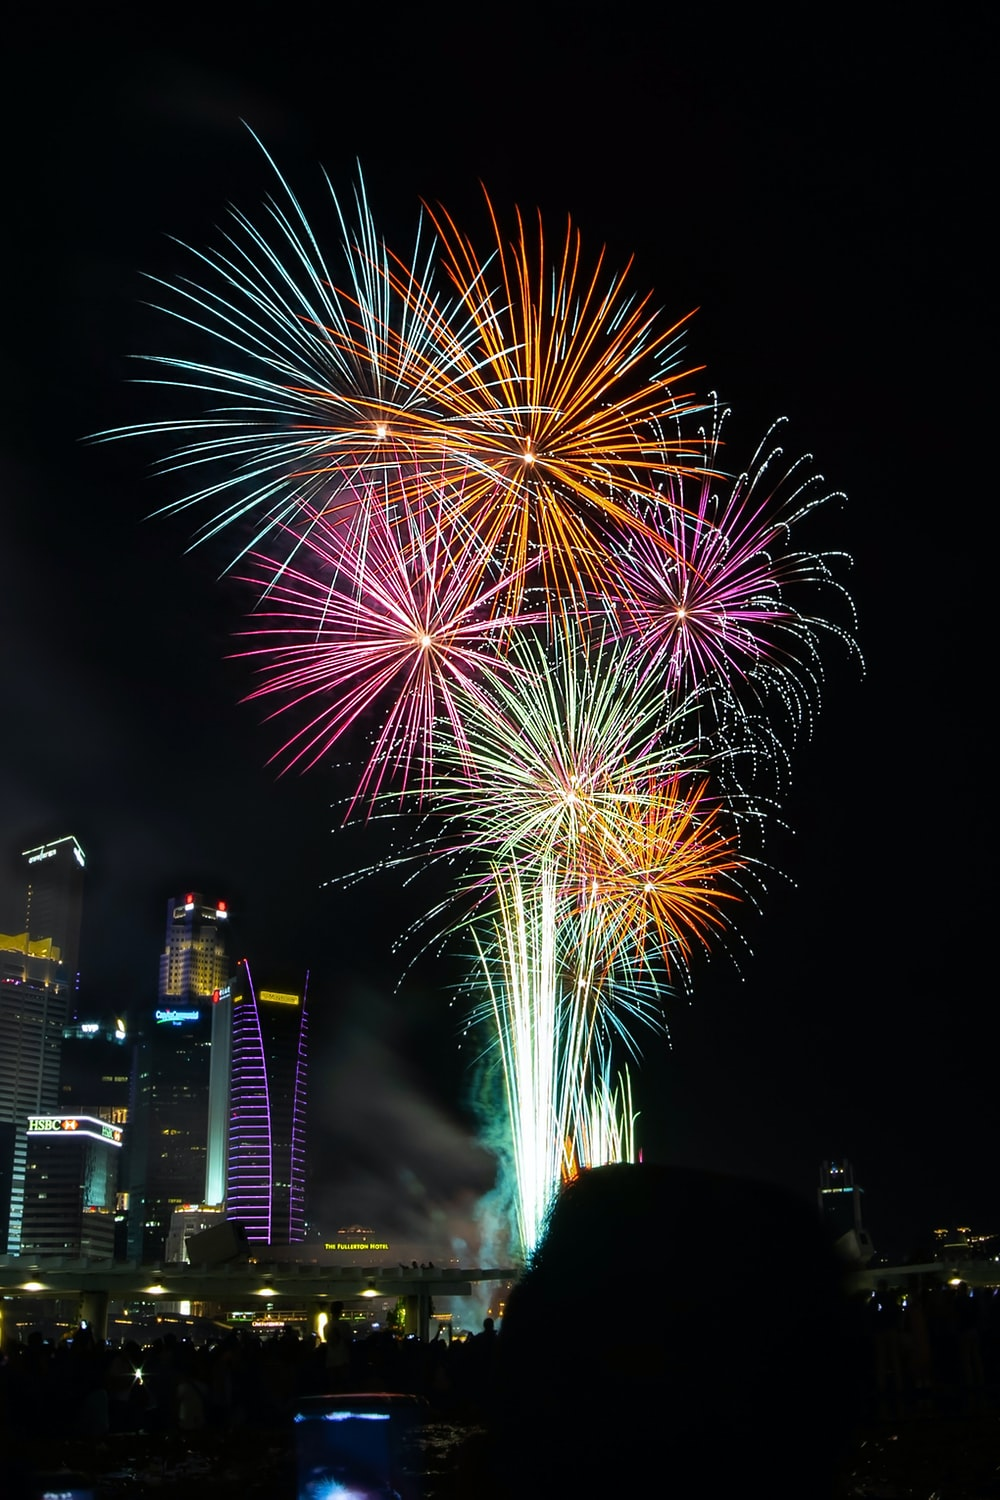 fireworks at night-time